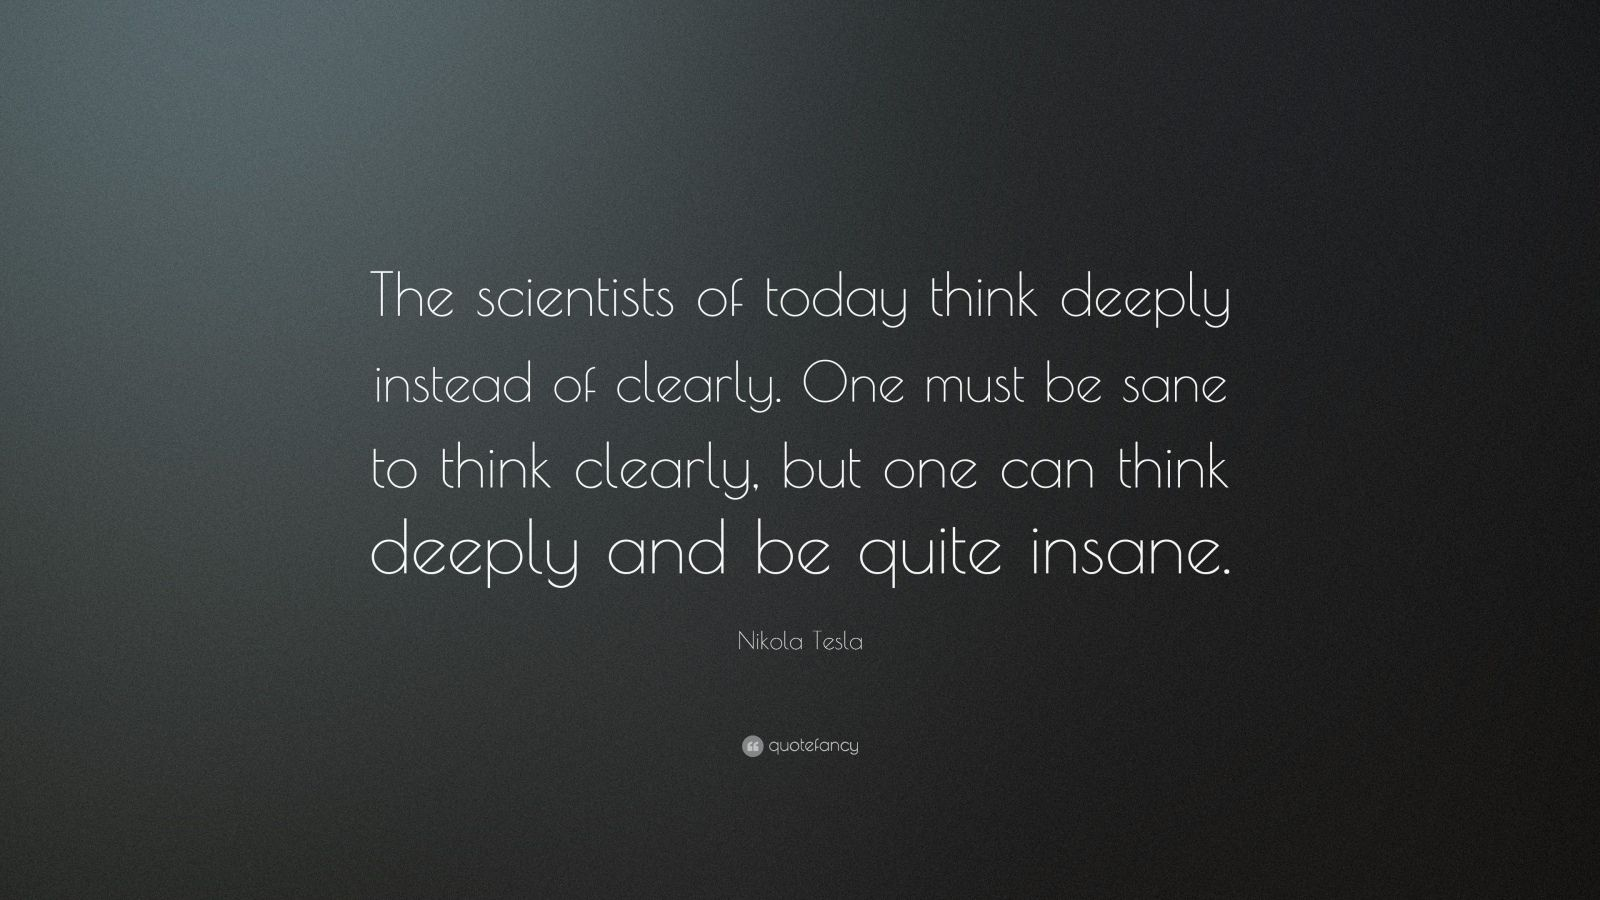 """Nikola Tesla Quote: """"The scientists of today think deeply instead of clearly. One must be sane to think clearly, but one can think deeply and be quite insane."""""""